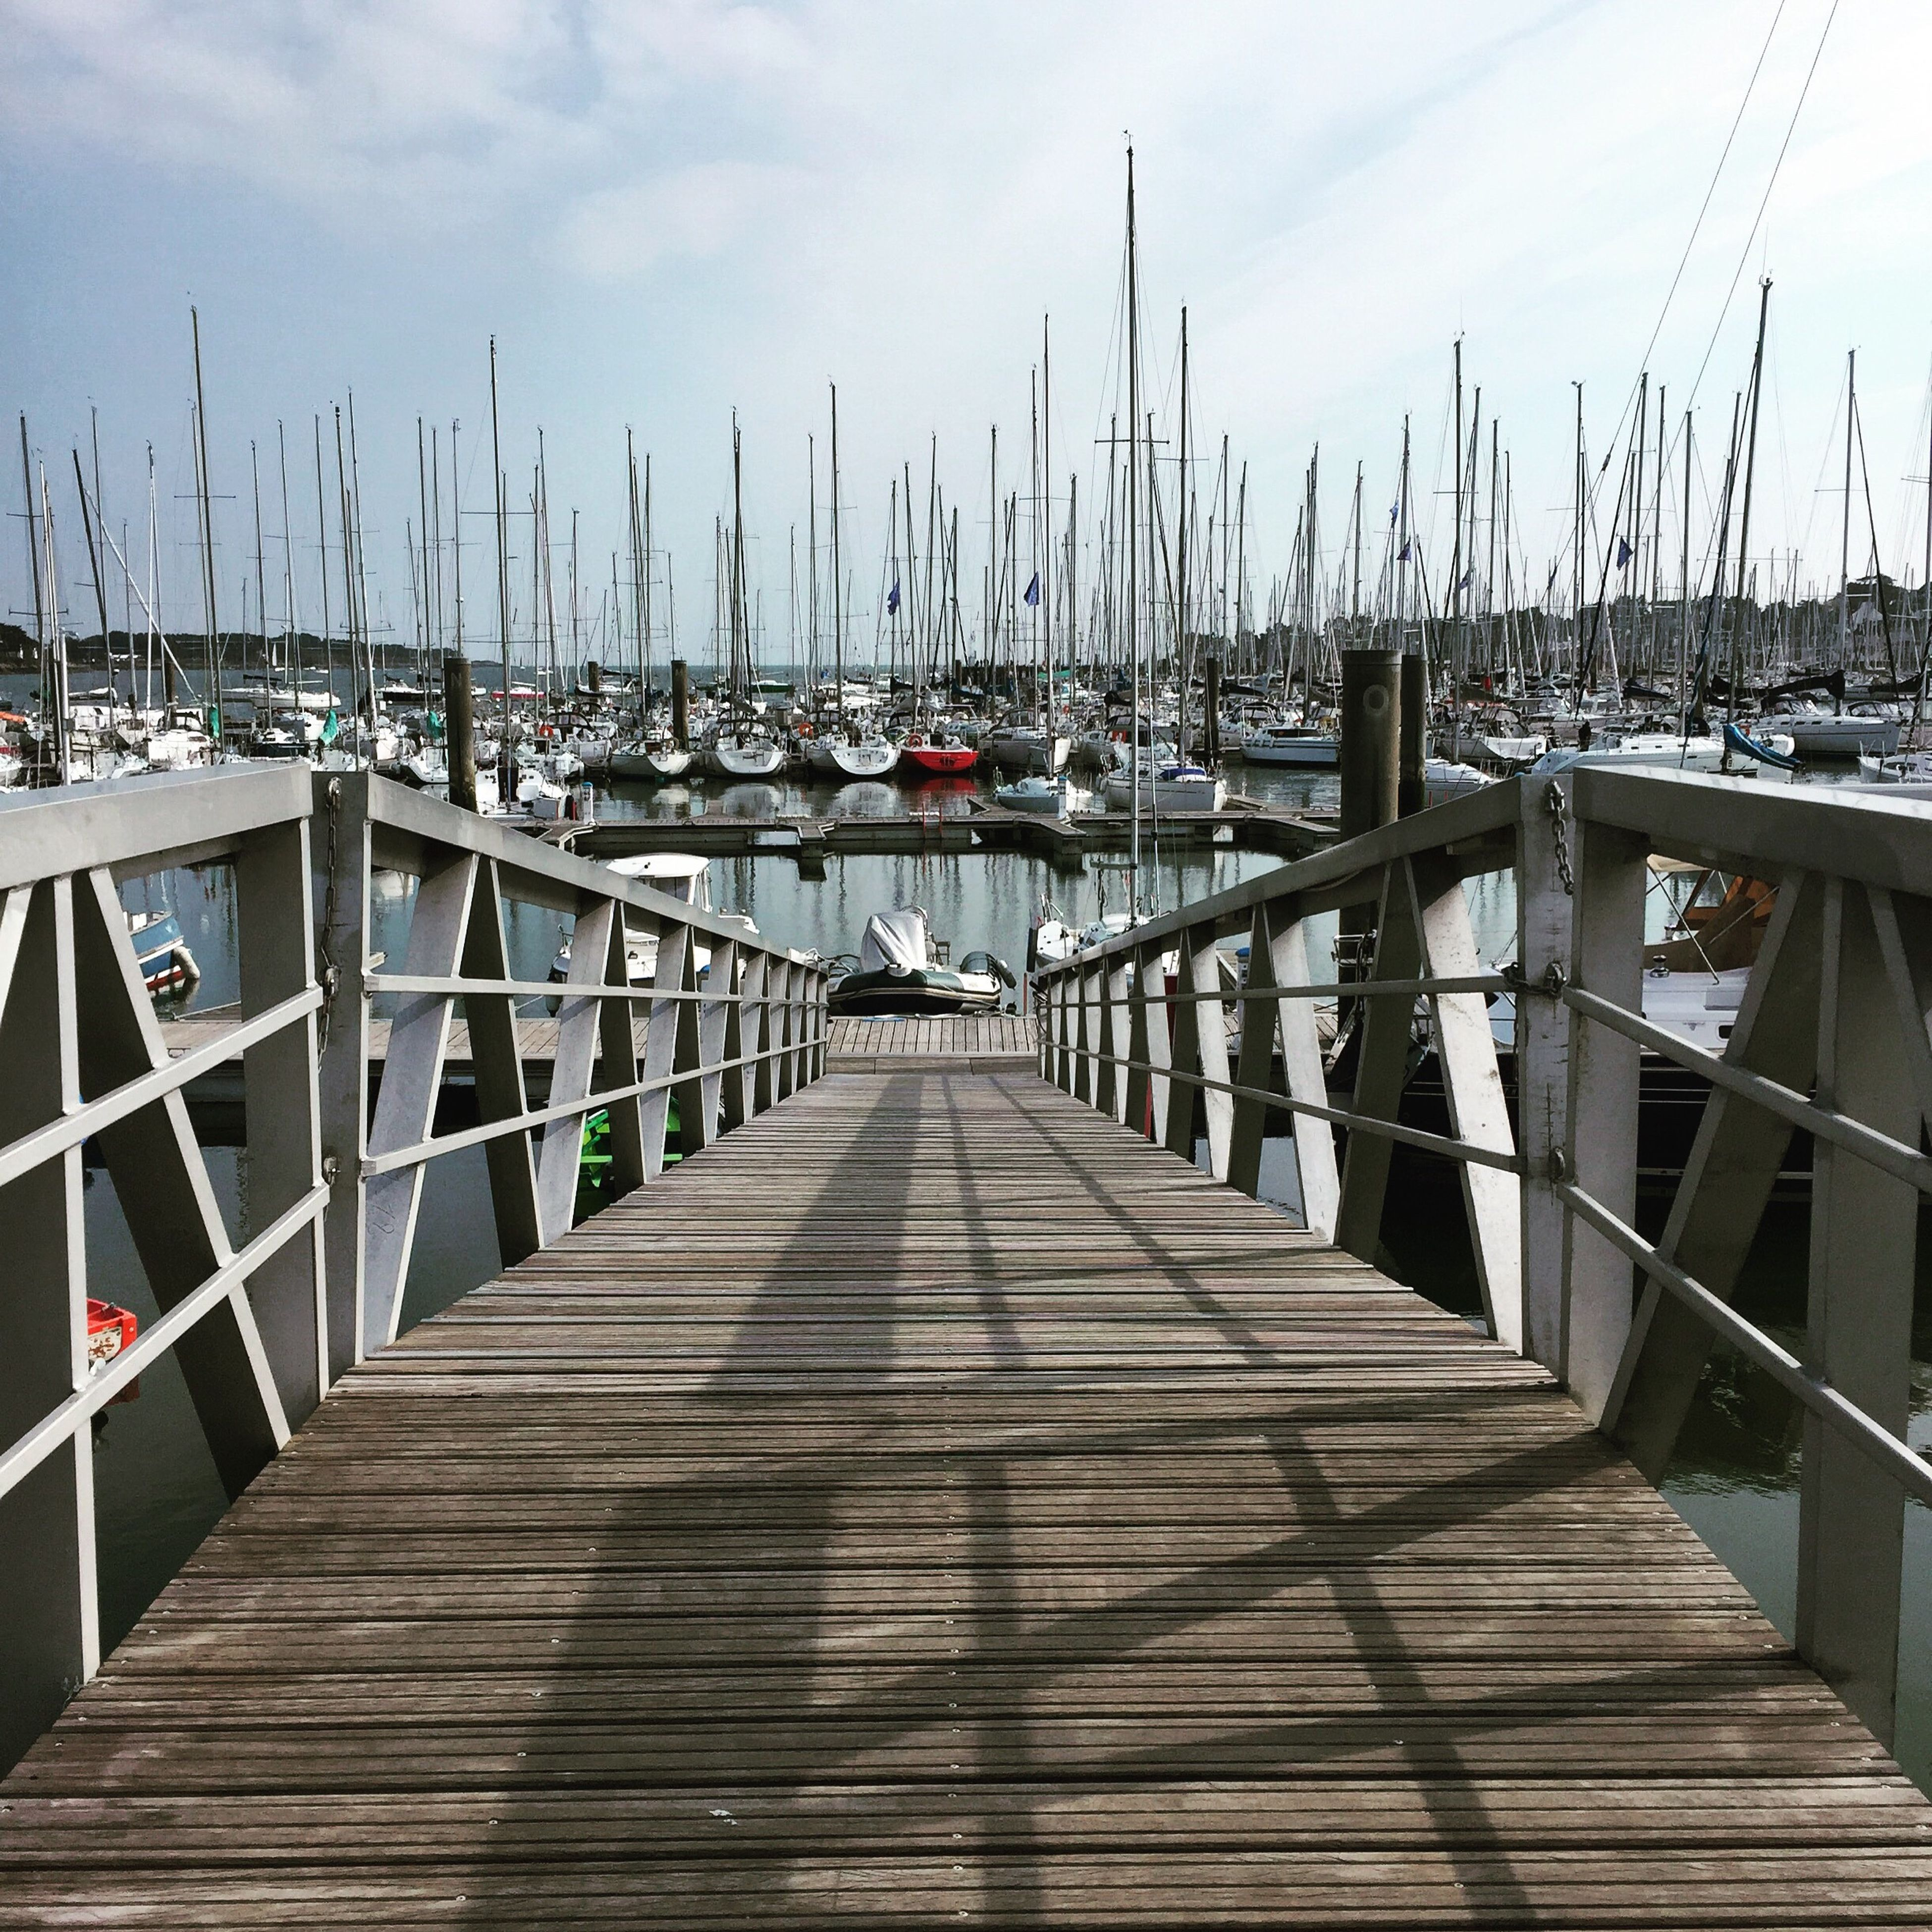 sky, railing, the way forward, pier, water, diminishing perspective, built structure, nautical vessel, transportation, wood - material, sea, architecture, moored, boardwalk, vanishing point, day, harbor, cloud - sky, jetty, boat